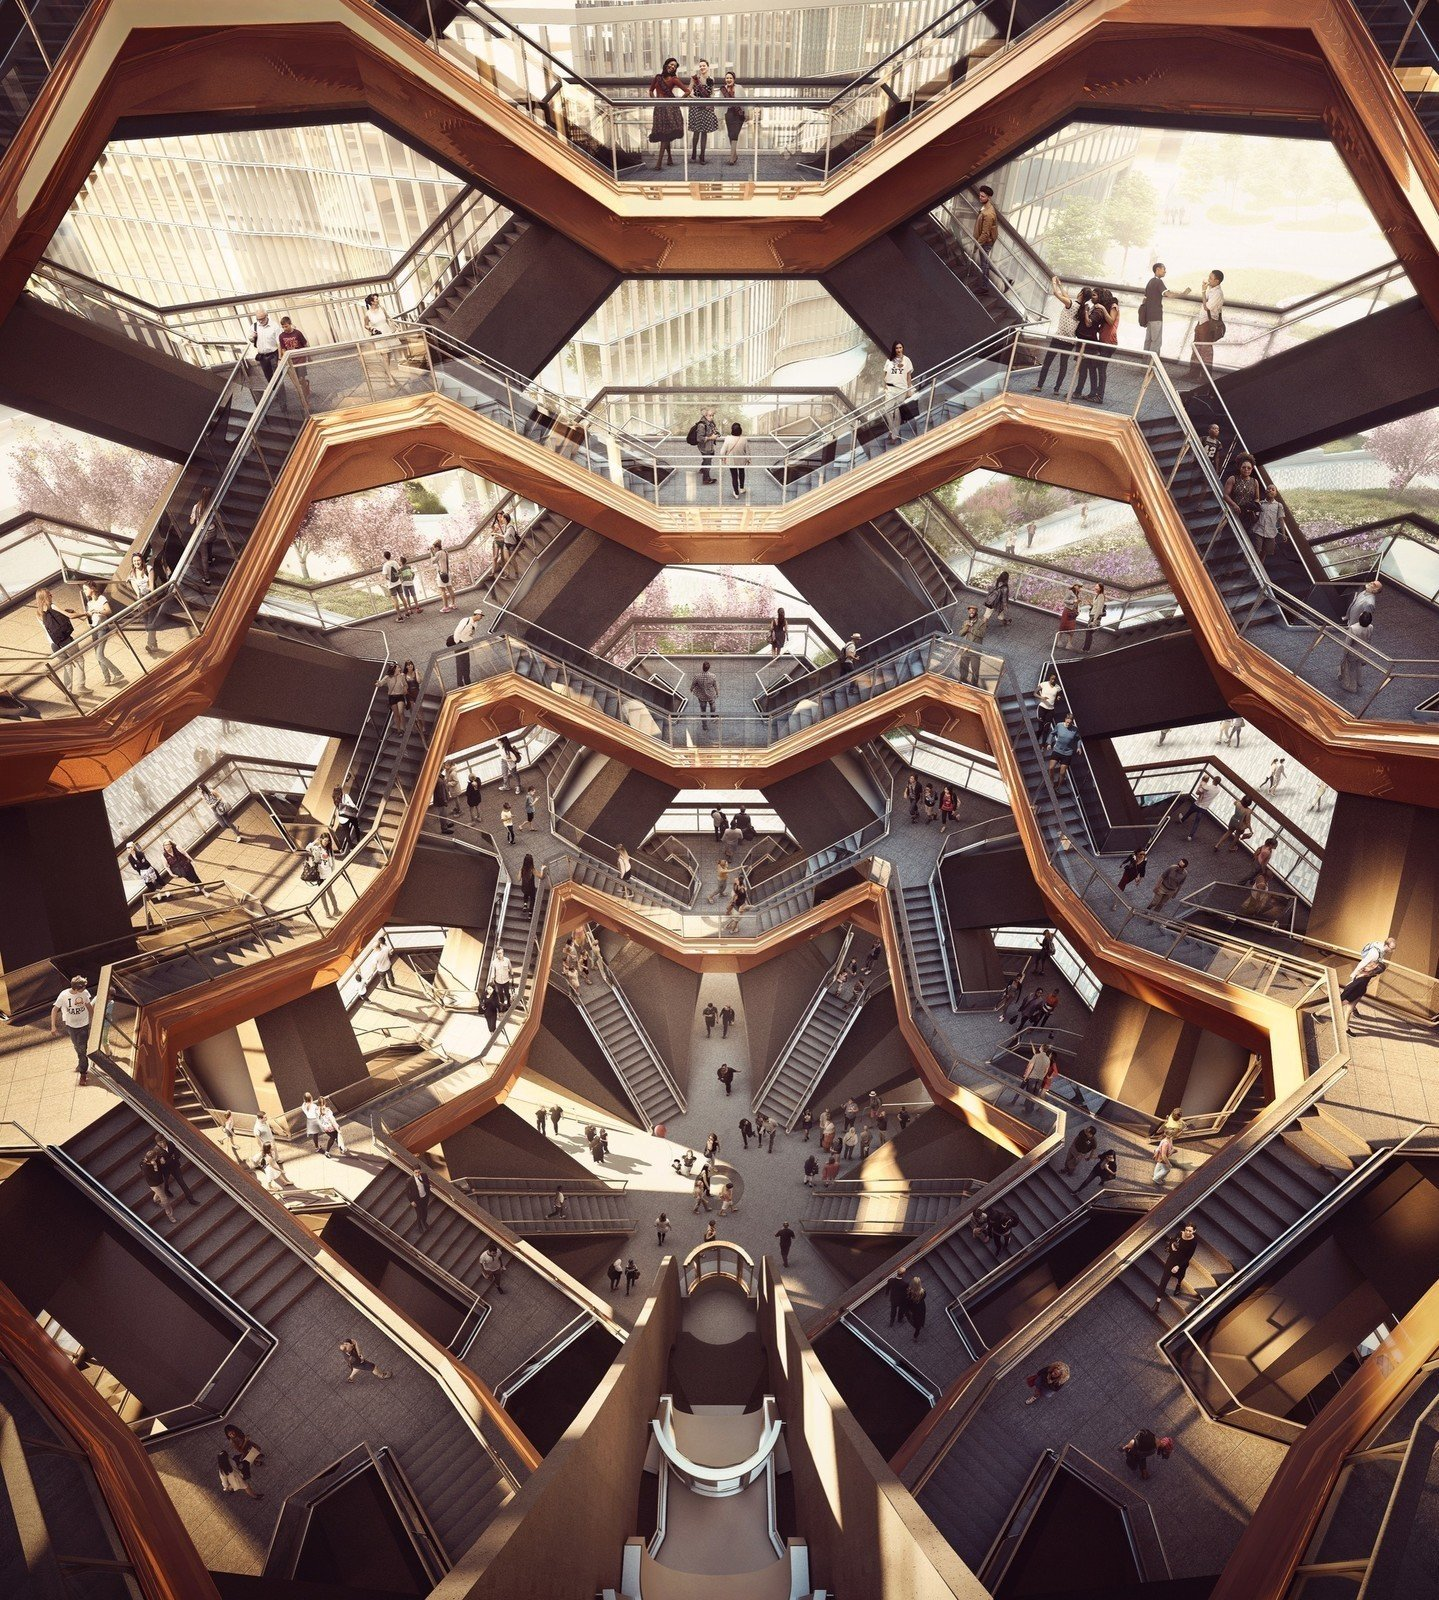 Photo 2 of 4 in A New Kind of Public Landmark: New York's Interactive Centerpiece by Heatherwick Studio